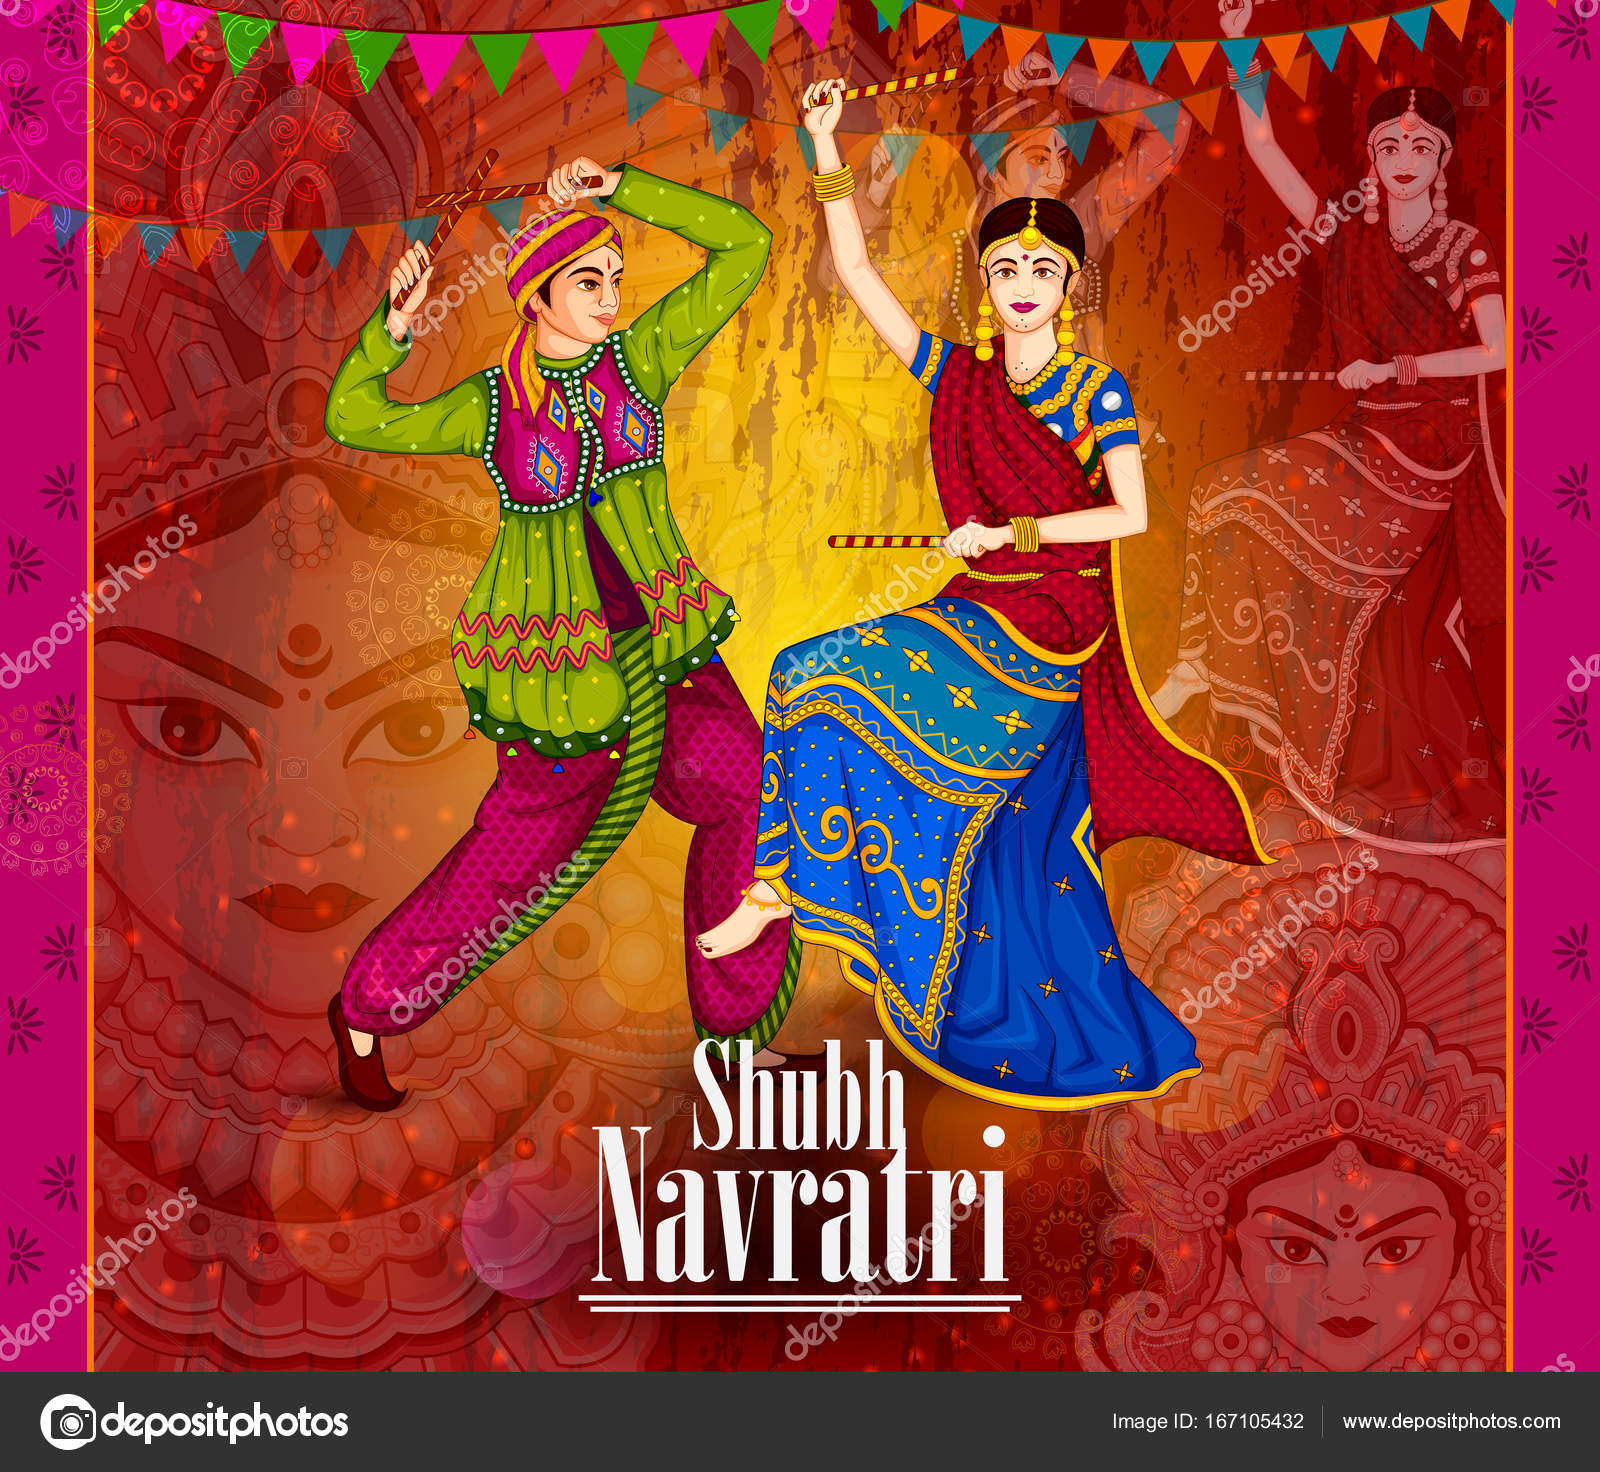 Pin by Yogis Henna and Face Painting on Bridal Henna Showcase from My  favorite artists   Dance paintings, Fabric painting, Kalamkari painting